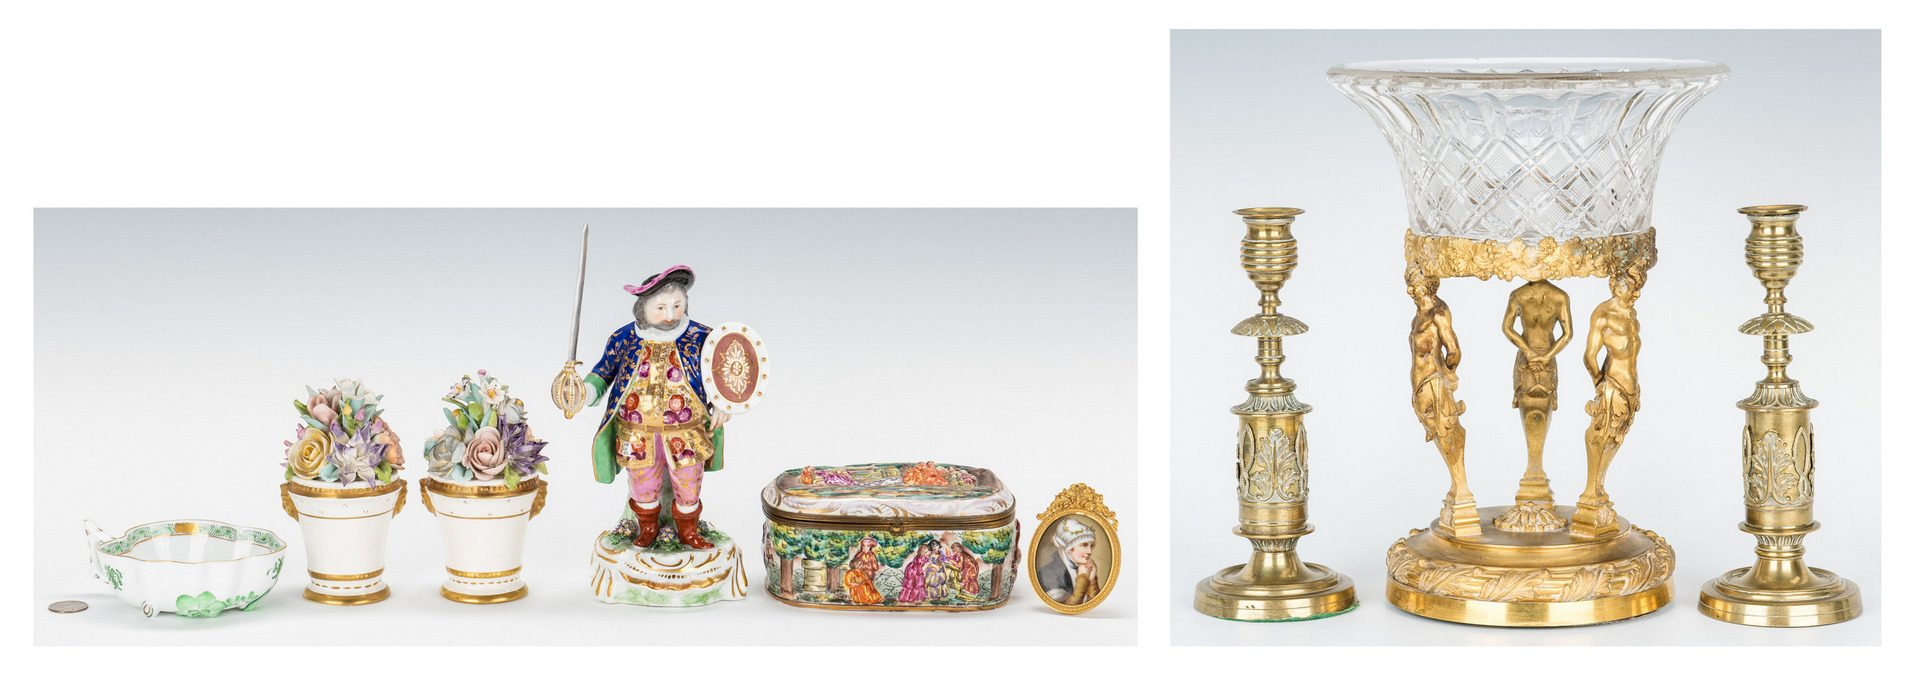 Lot 105: 9 European Decorative Accessories inc. Satyr Compo